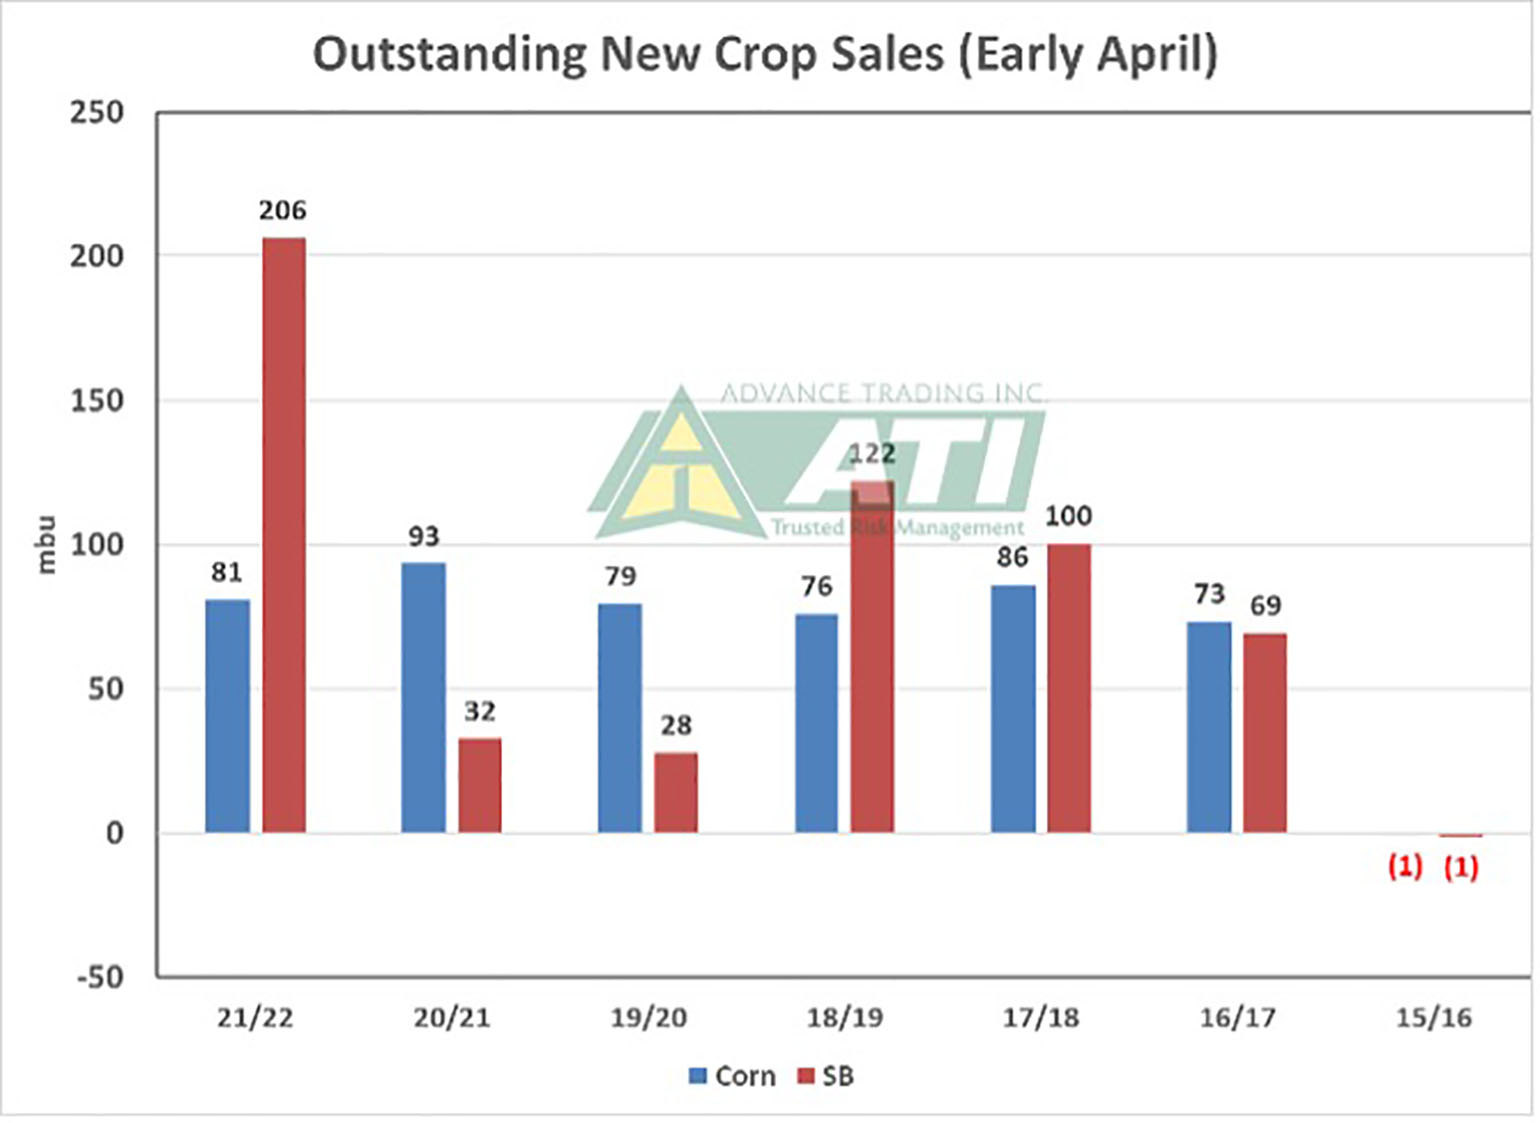 Outstanding New Crop Sales